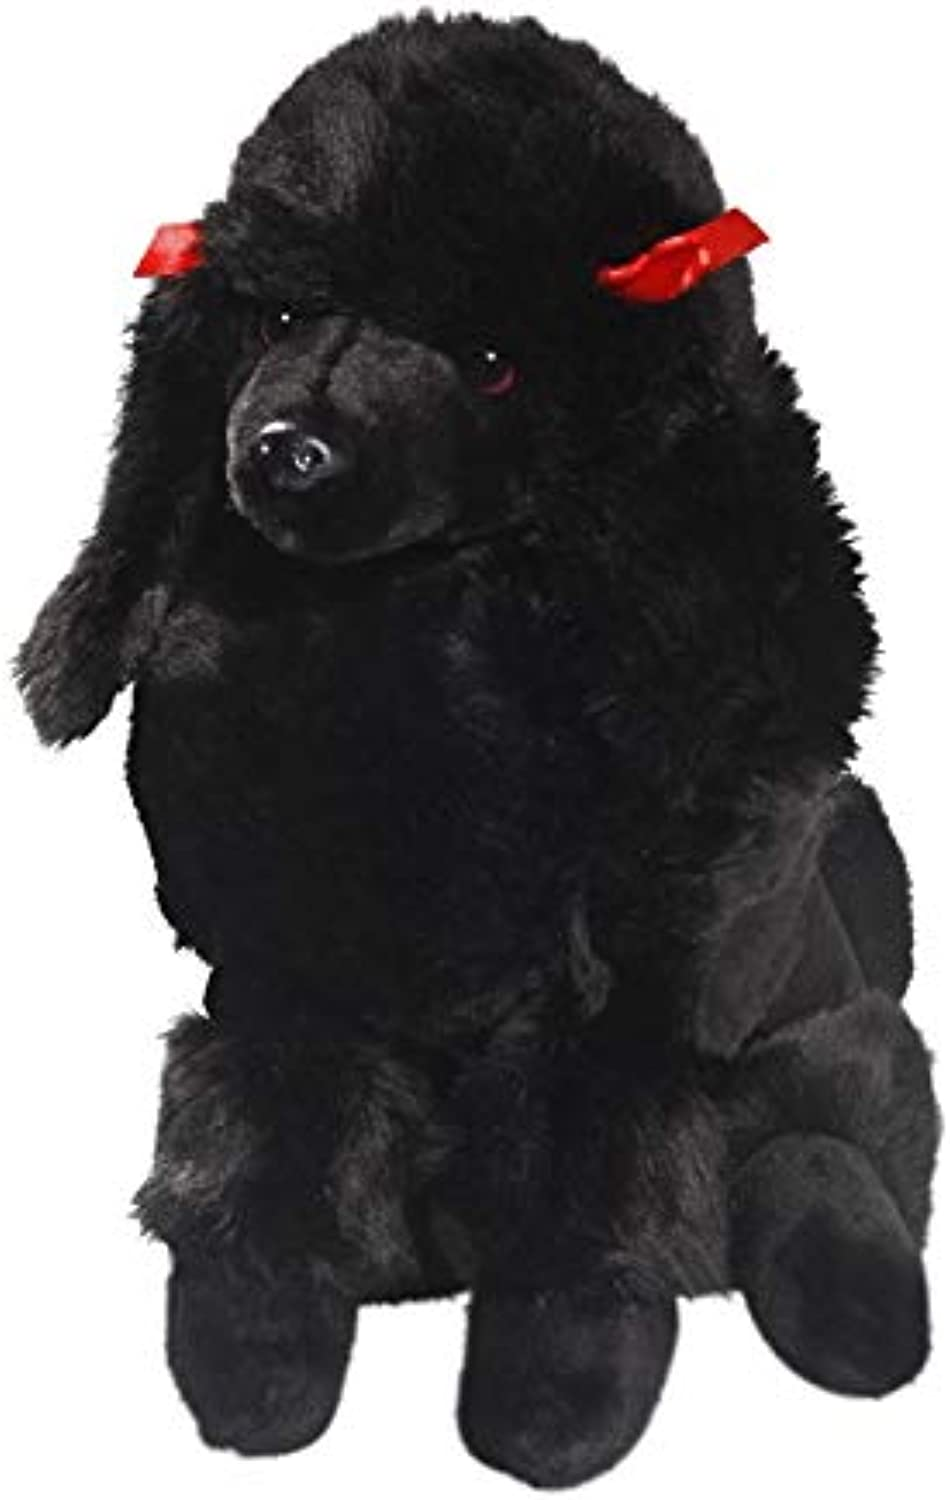 Carl Dick Poodle Black, 12 inches, 30cm, Plush Toy, Soft Toy, Stuffed Animal 3267